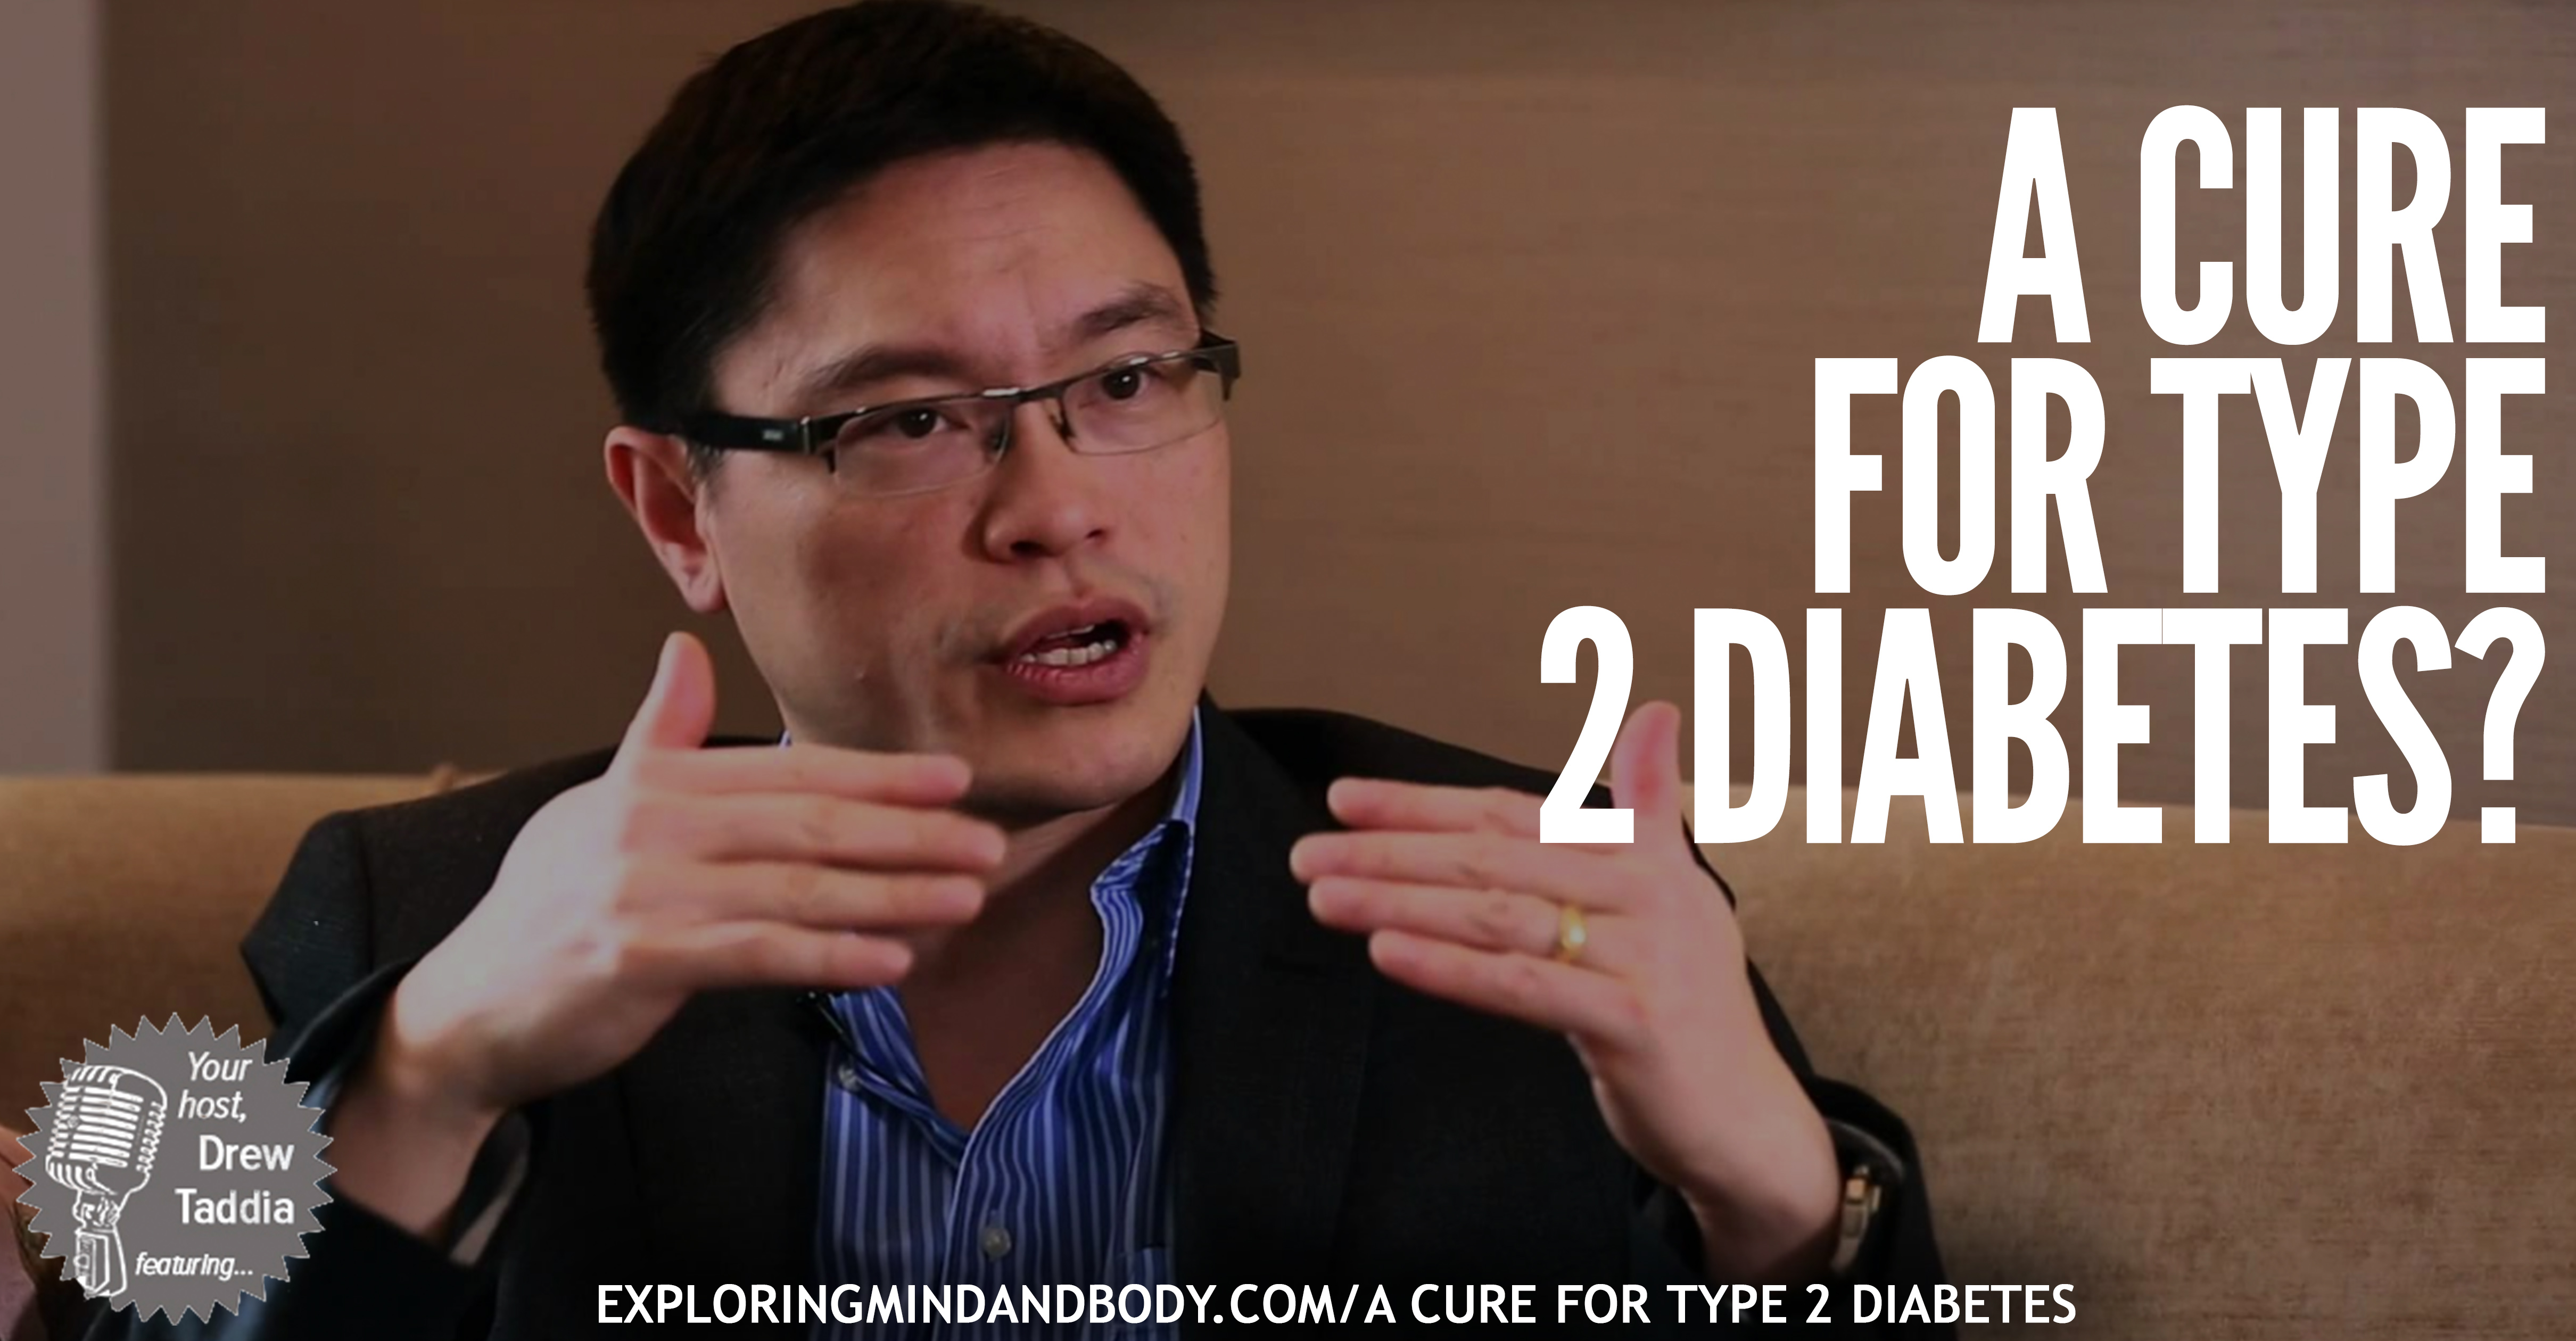 A cure for type 2 diabetes